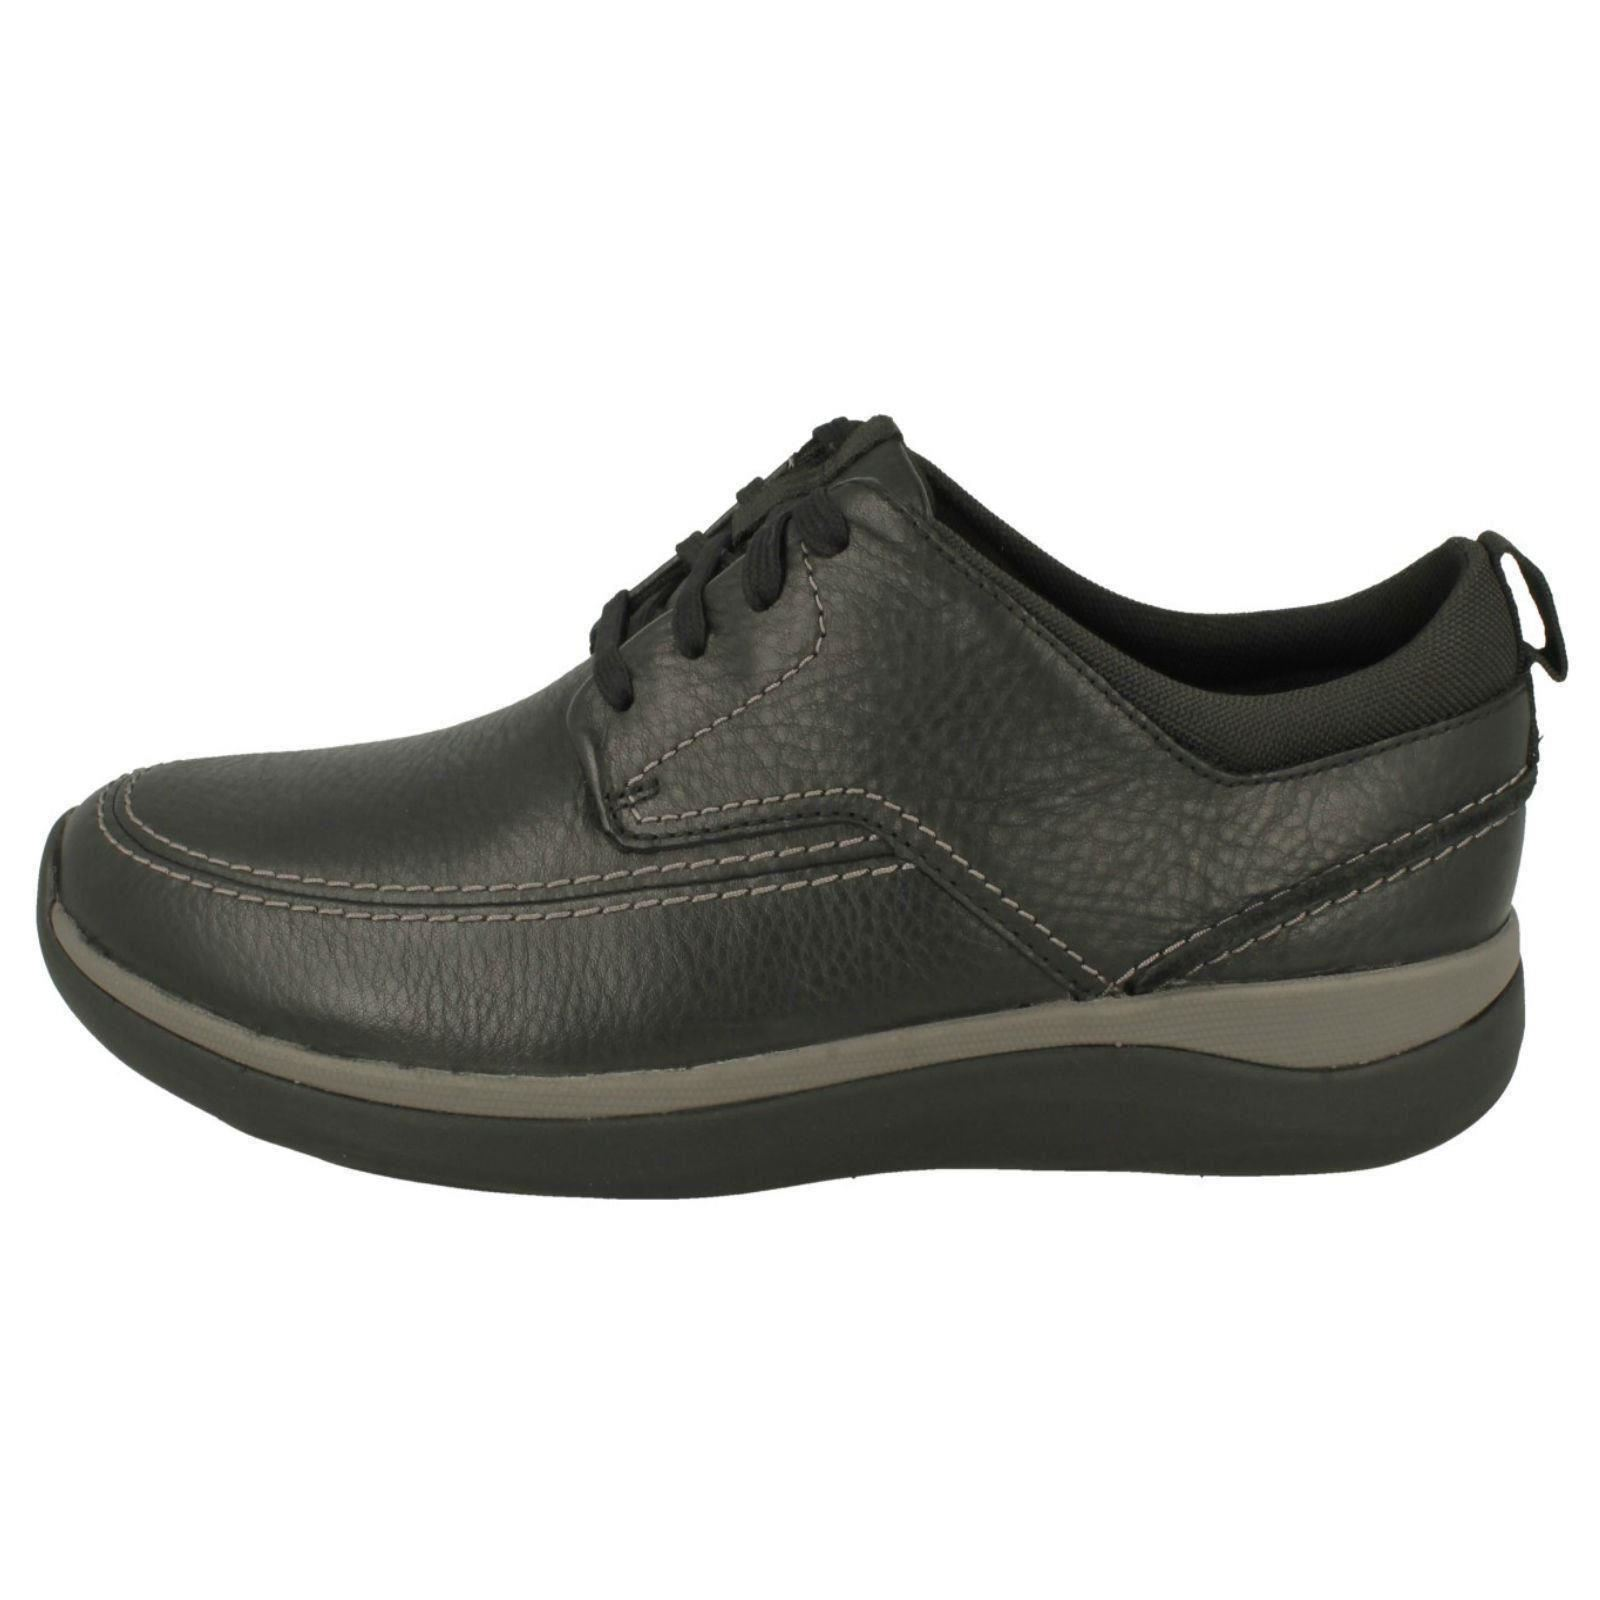 Mens-Unstructured-by-Clarks-Lace-Up-Shoes-039-Garratt-Street-039 thumbnail 7